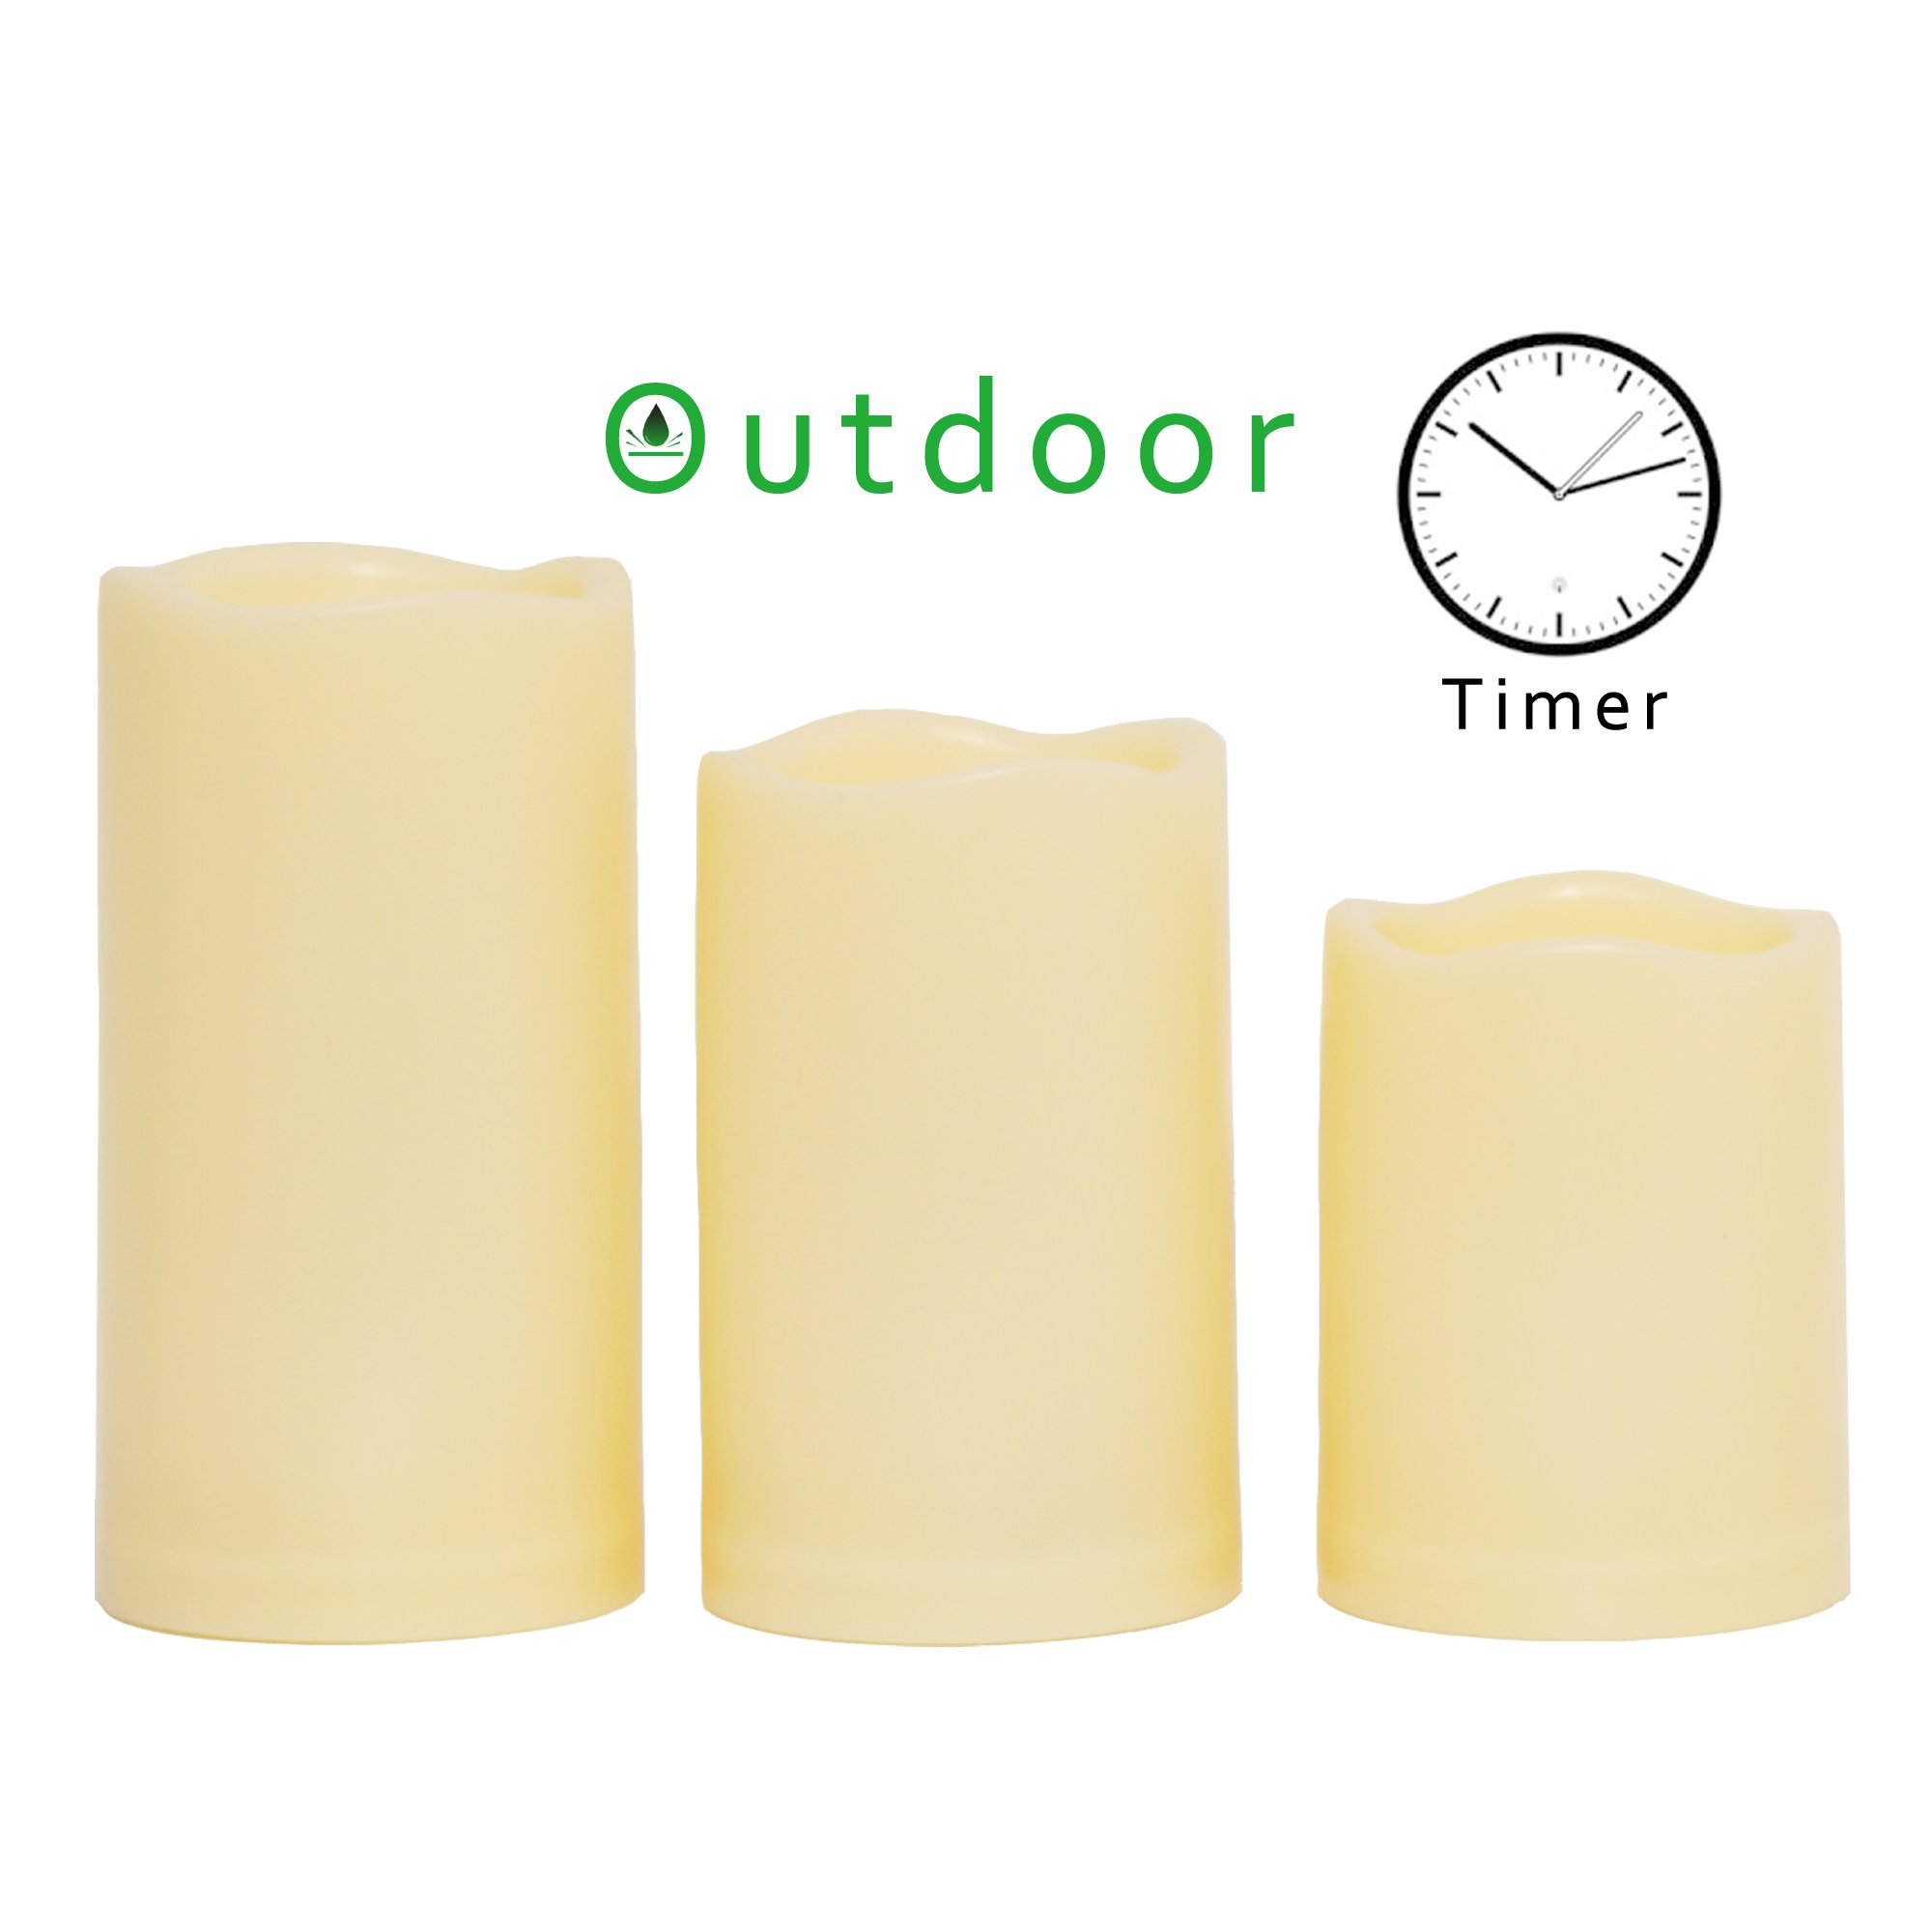 "Outdoor Flameless LED Candles with Timer – Long Lasting Waterproof Plastic Resin Realistic Flickering Battery Operated Pillar Candles Wedding Party Garden Decoration 3""x 4""/5""/6"" Waved Edge 3 PCS"